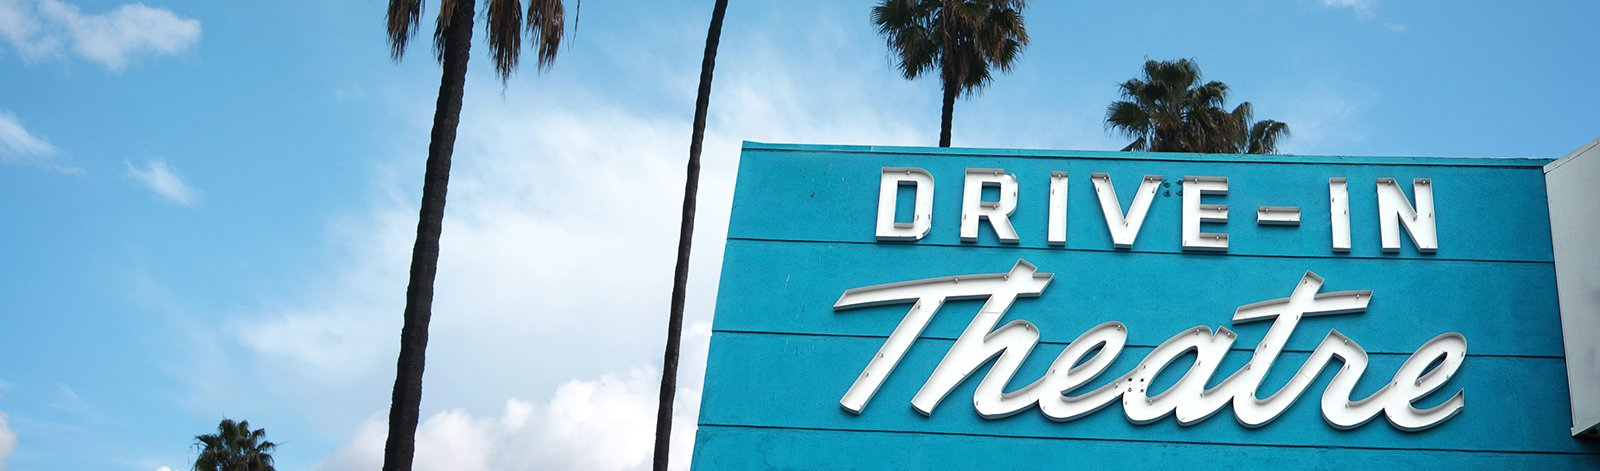 Drive-in theatre sign with palm trees